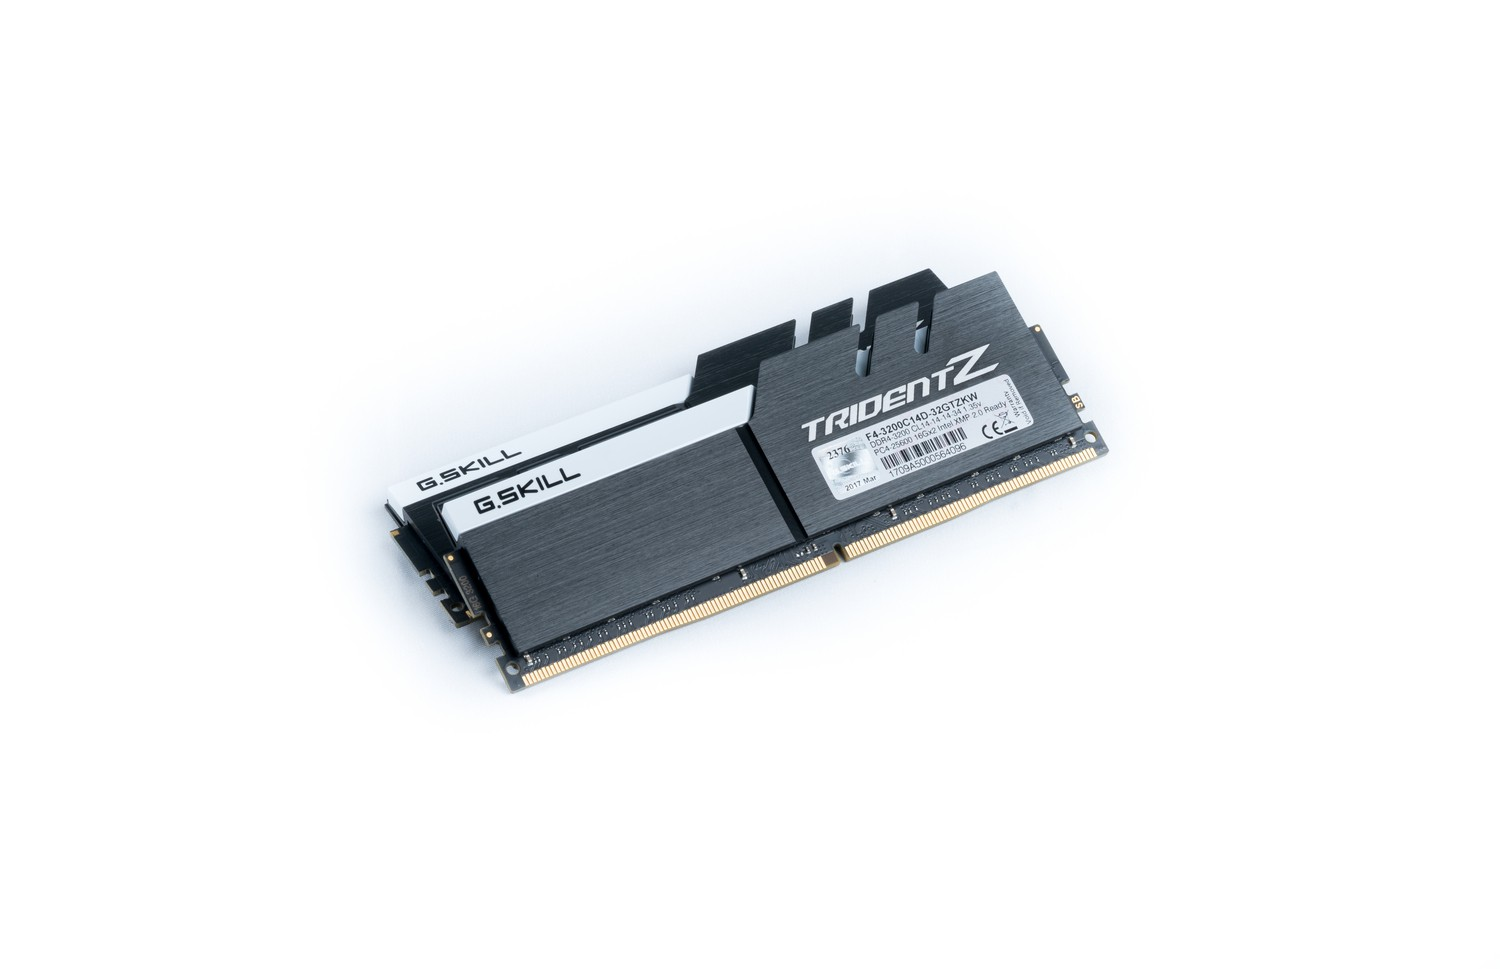 hight resolution of for all those reasons above i ended up going with 2x16gb ddr4 3200 cl14 ram it s among the highest frequency and lowest latency ram you can find